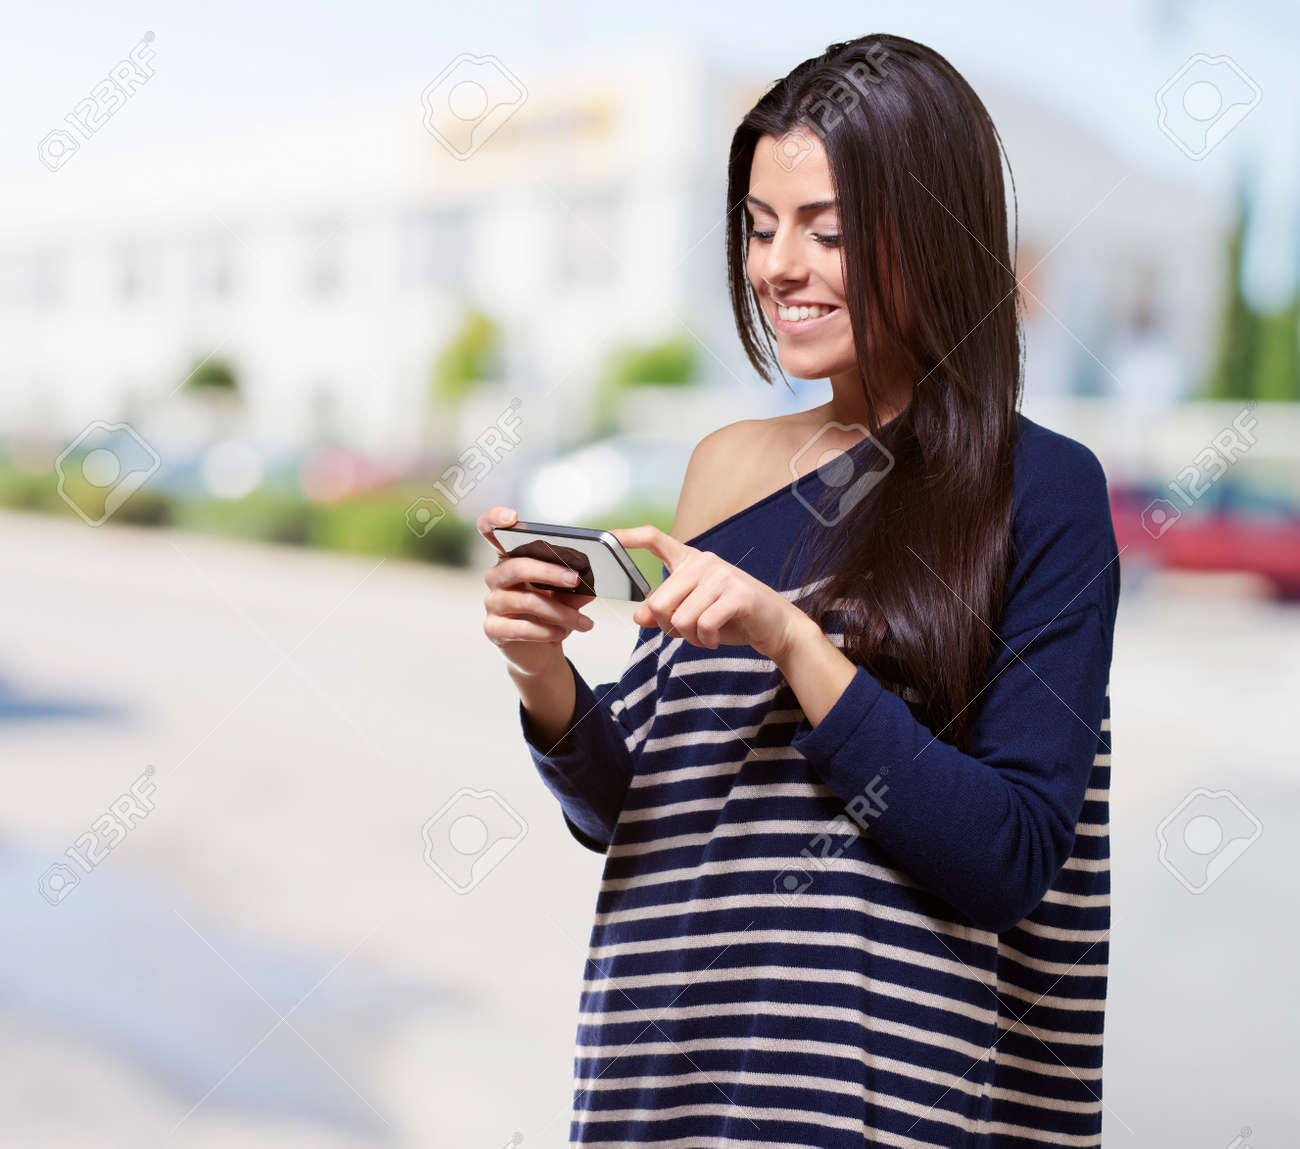 portrait of young woman touching a modern mobile at street - 16252258